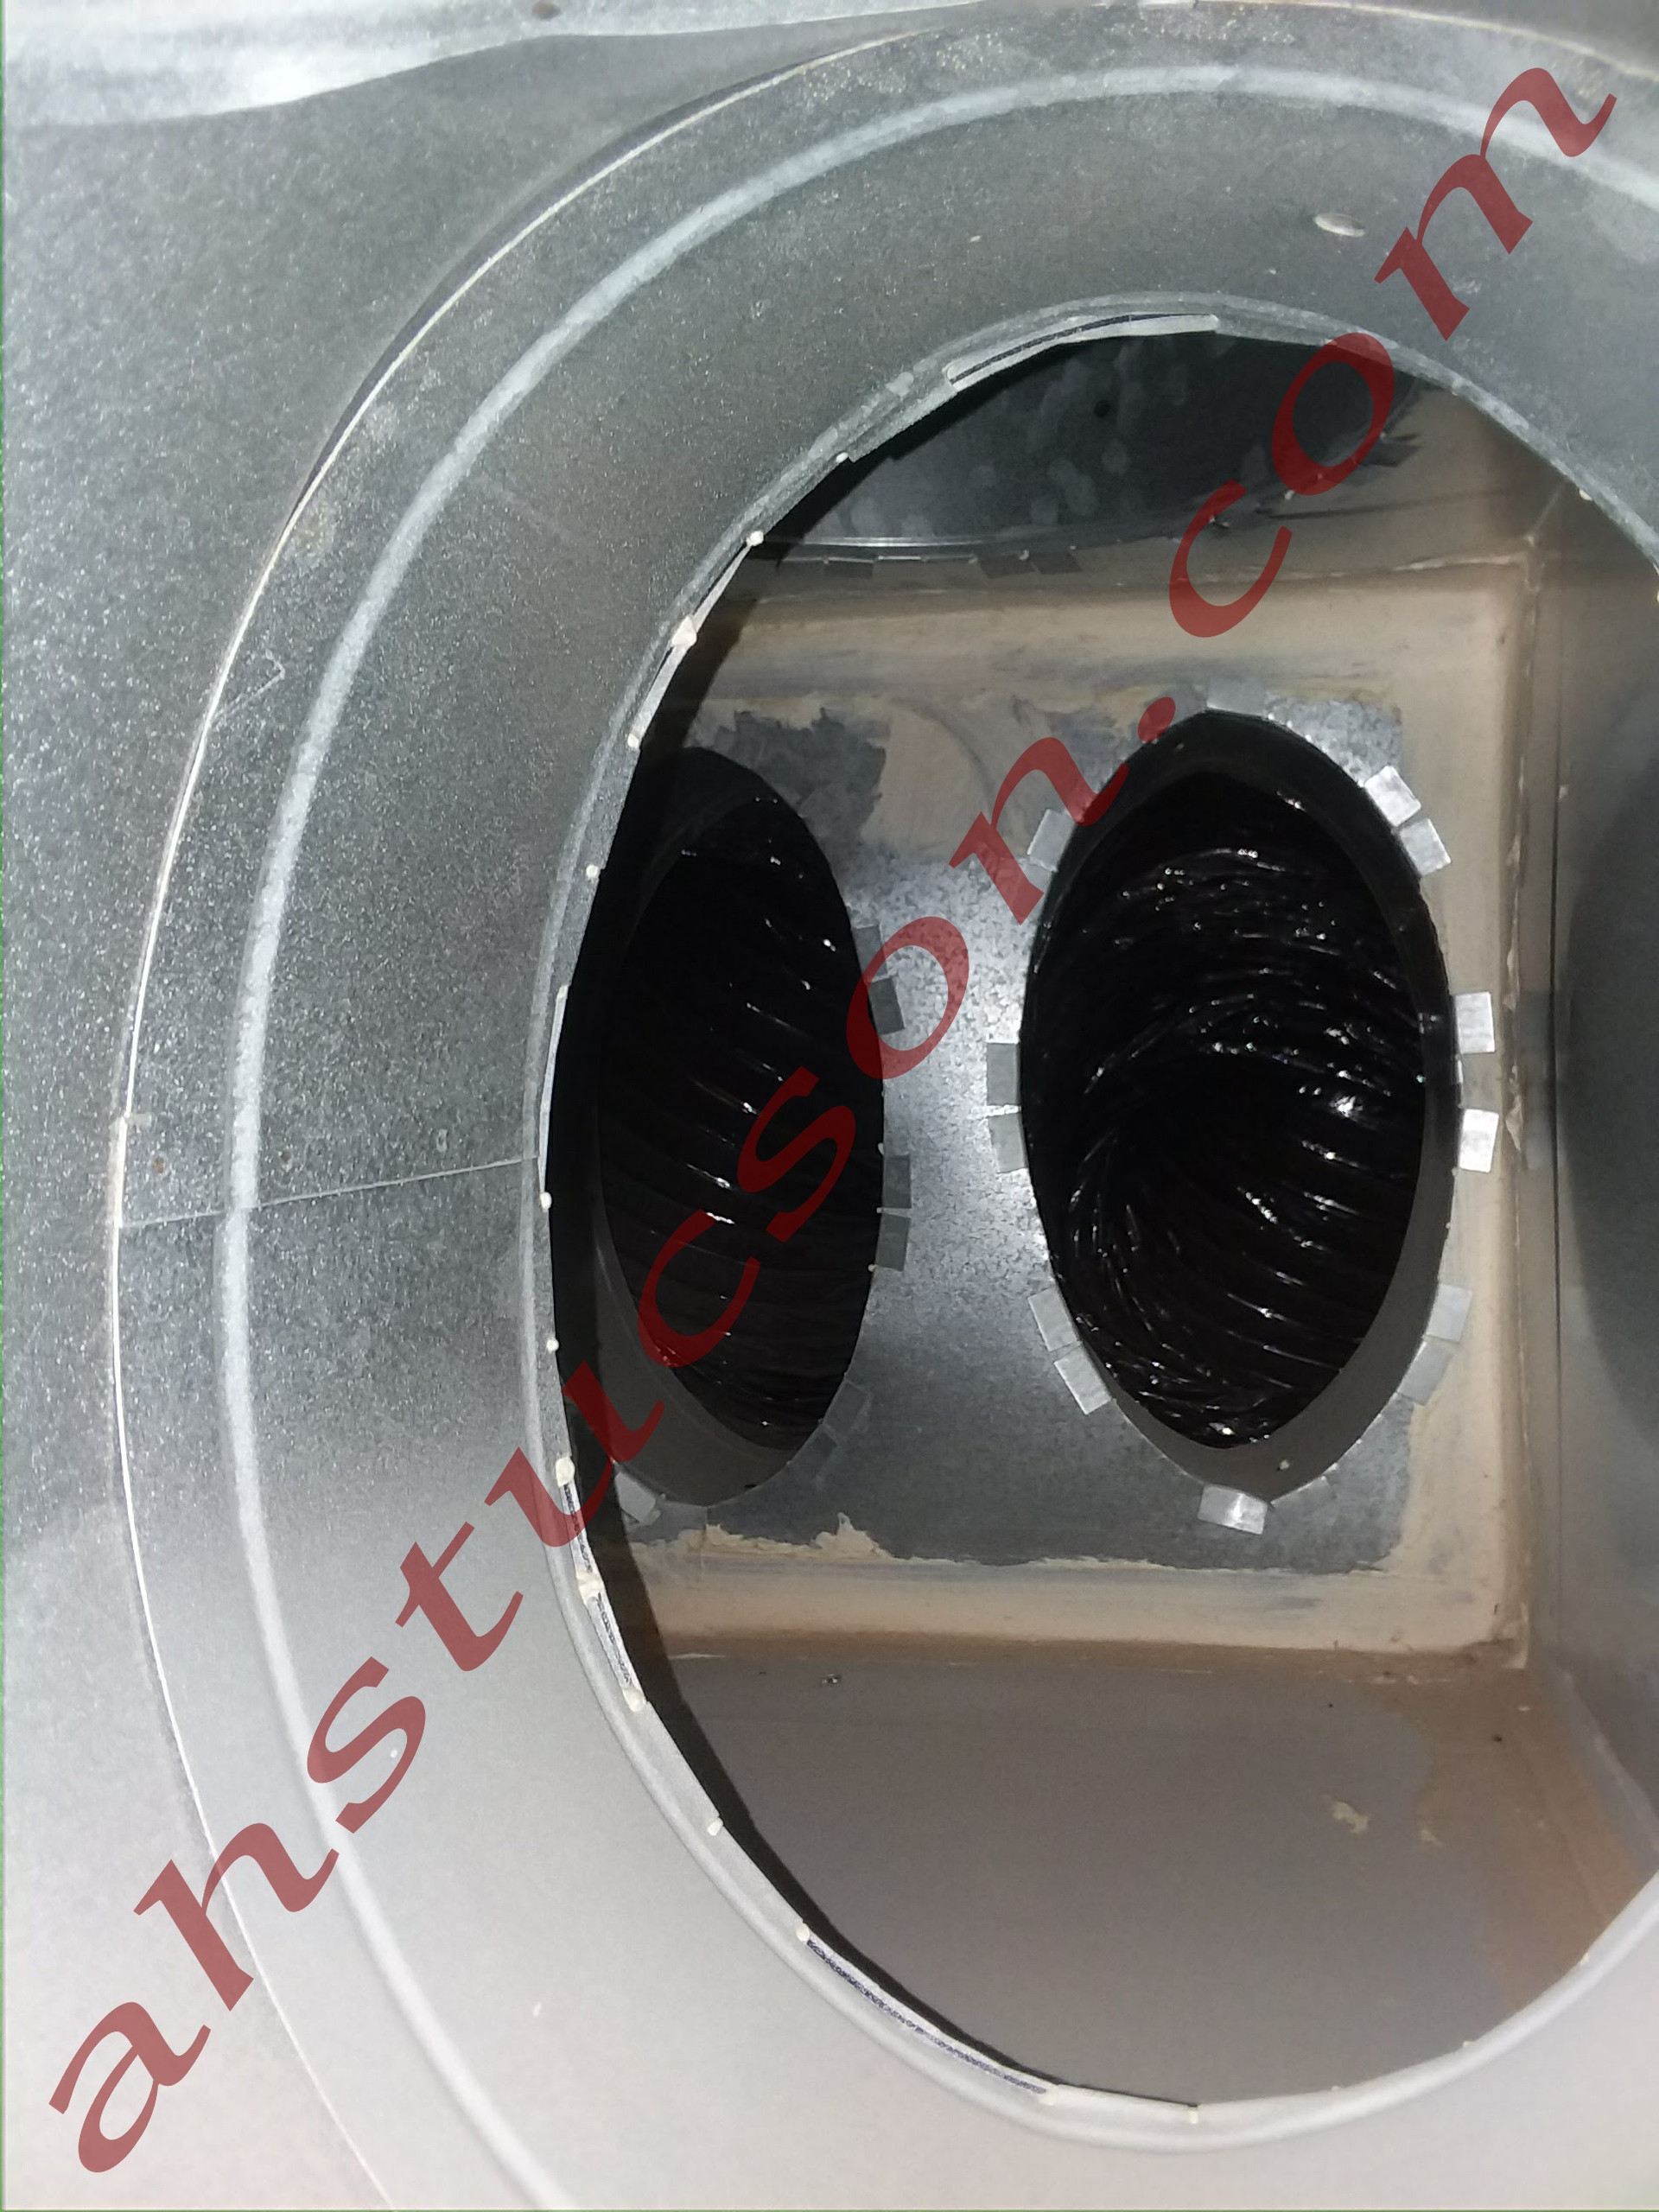 air-duct-cleaning-20180413_160819.jpg